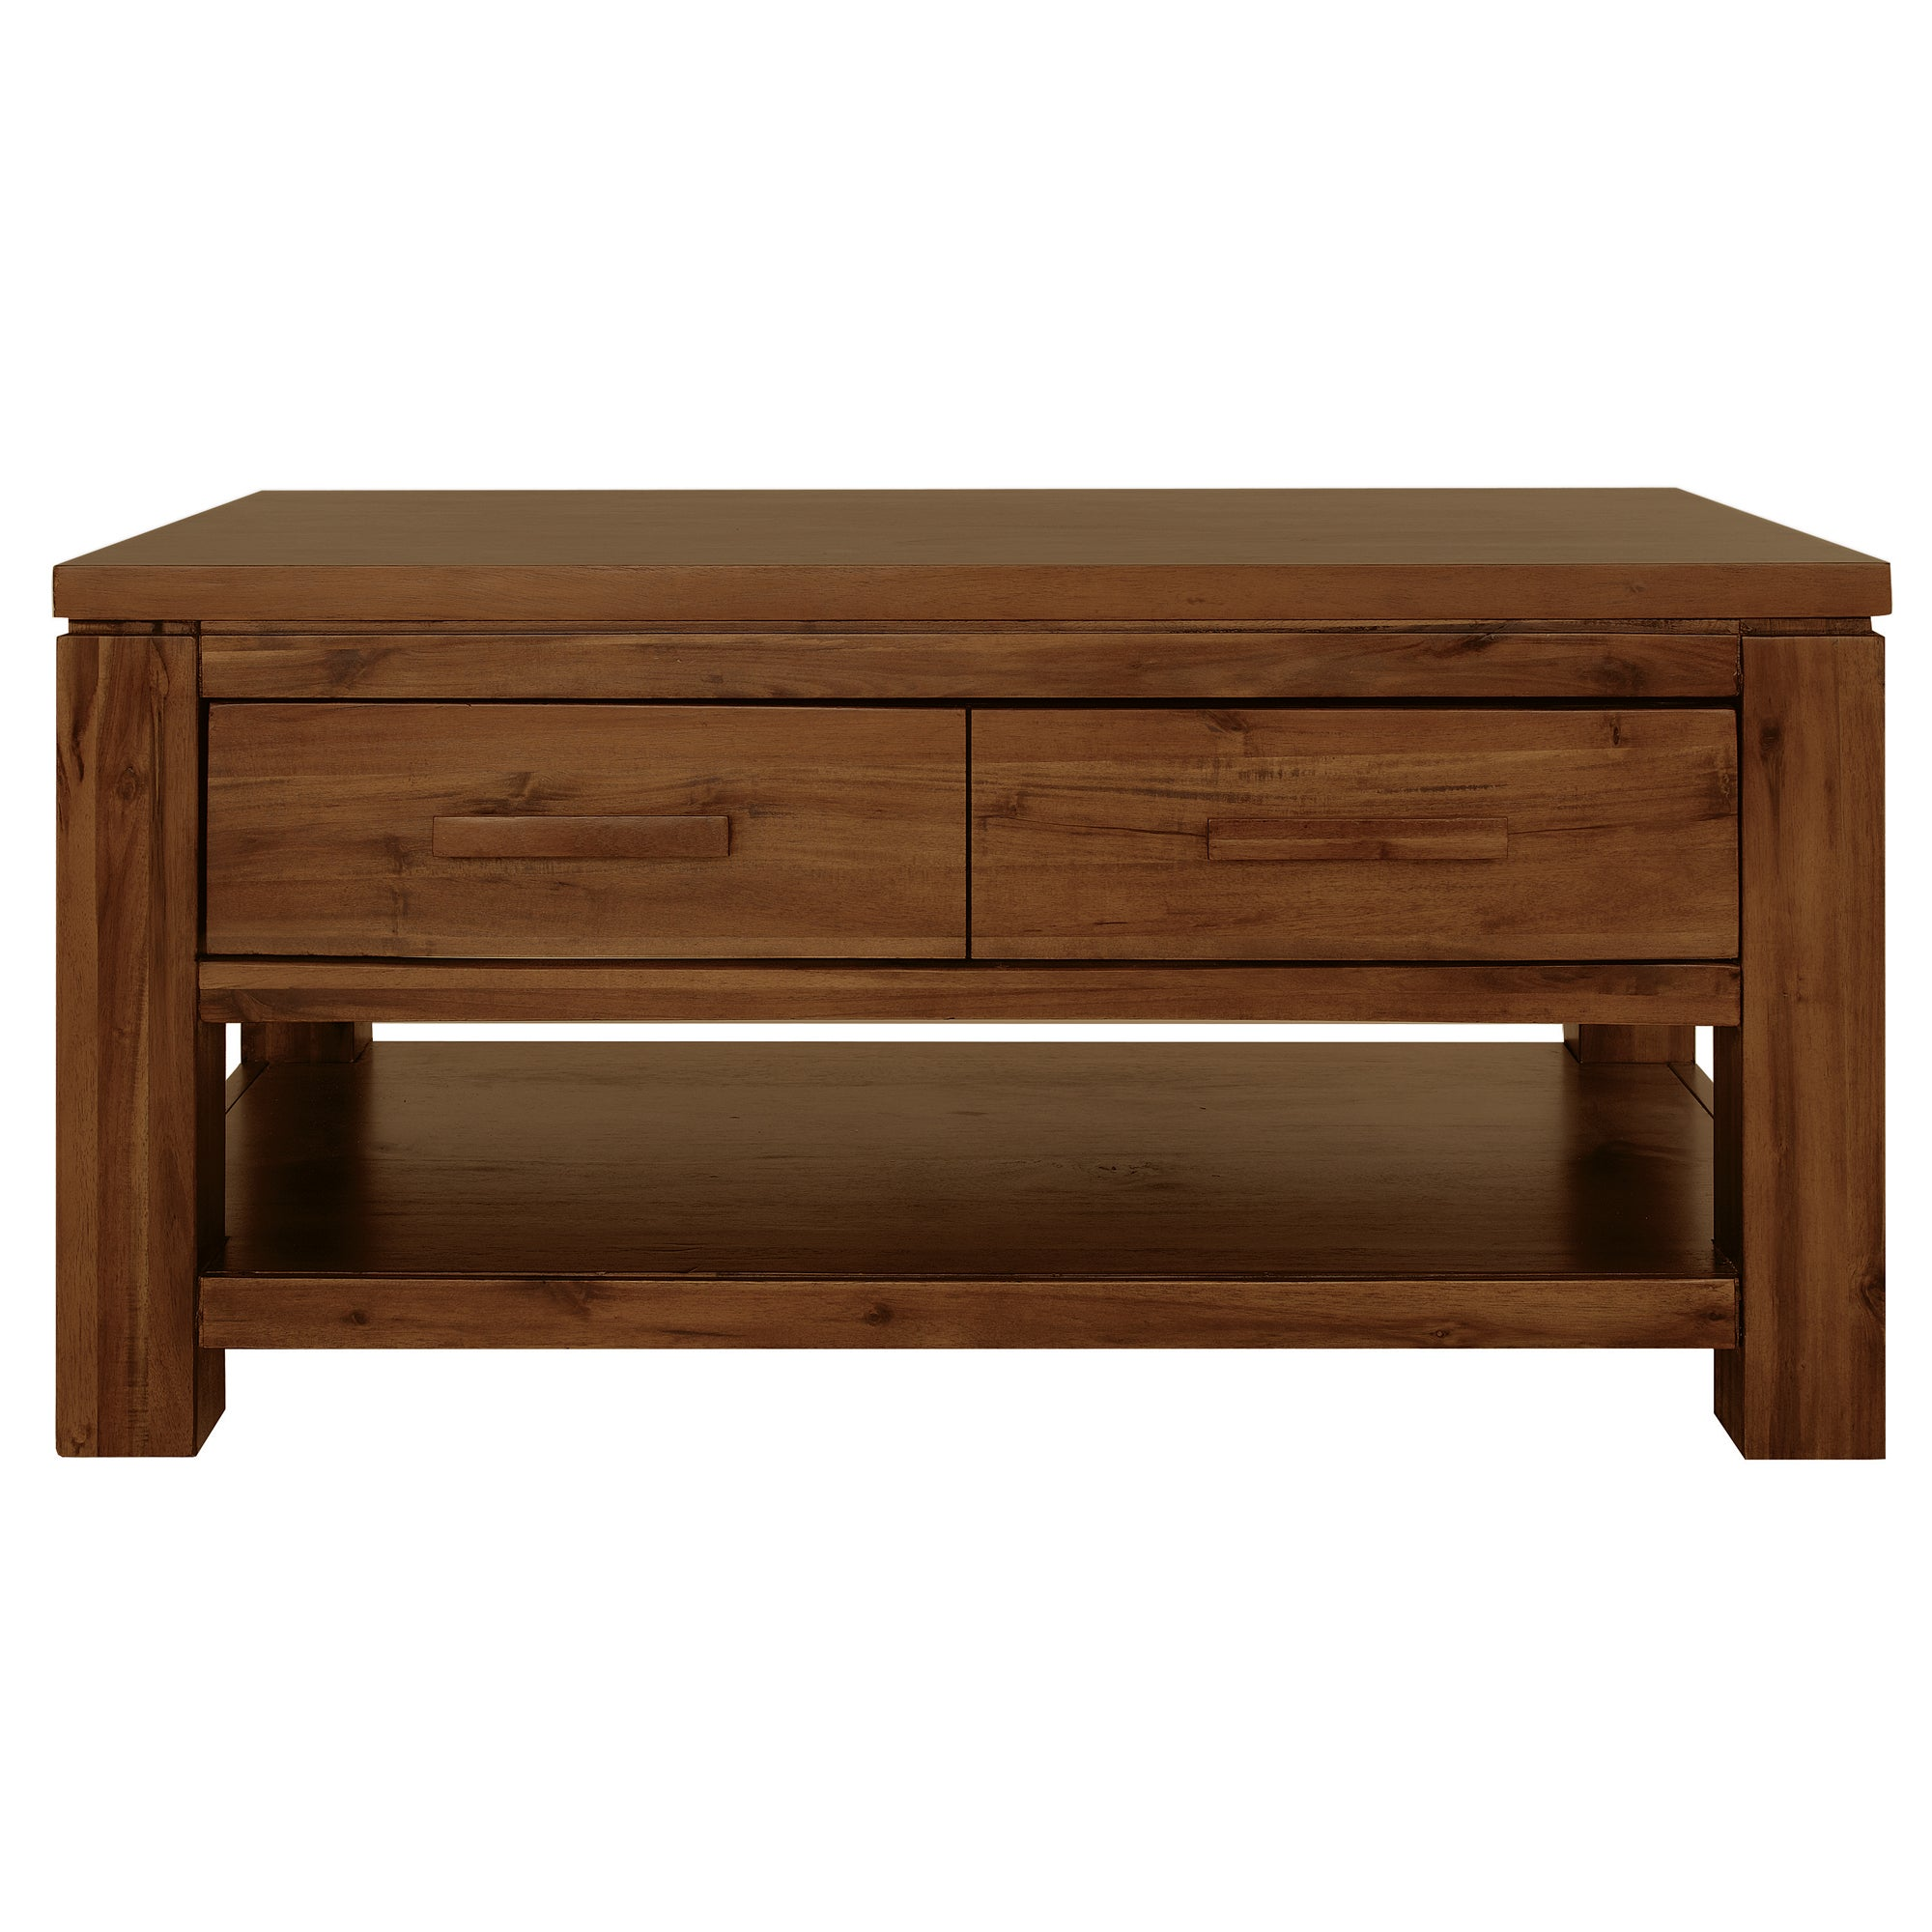 Seville Acacia Dark Wood Coffee Table